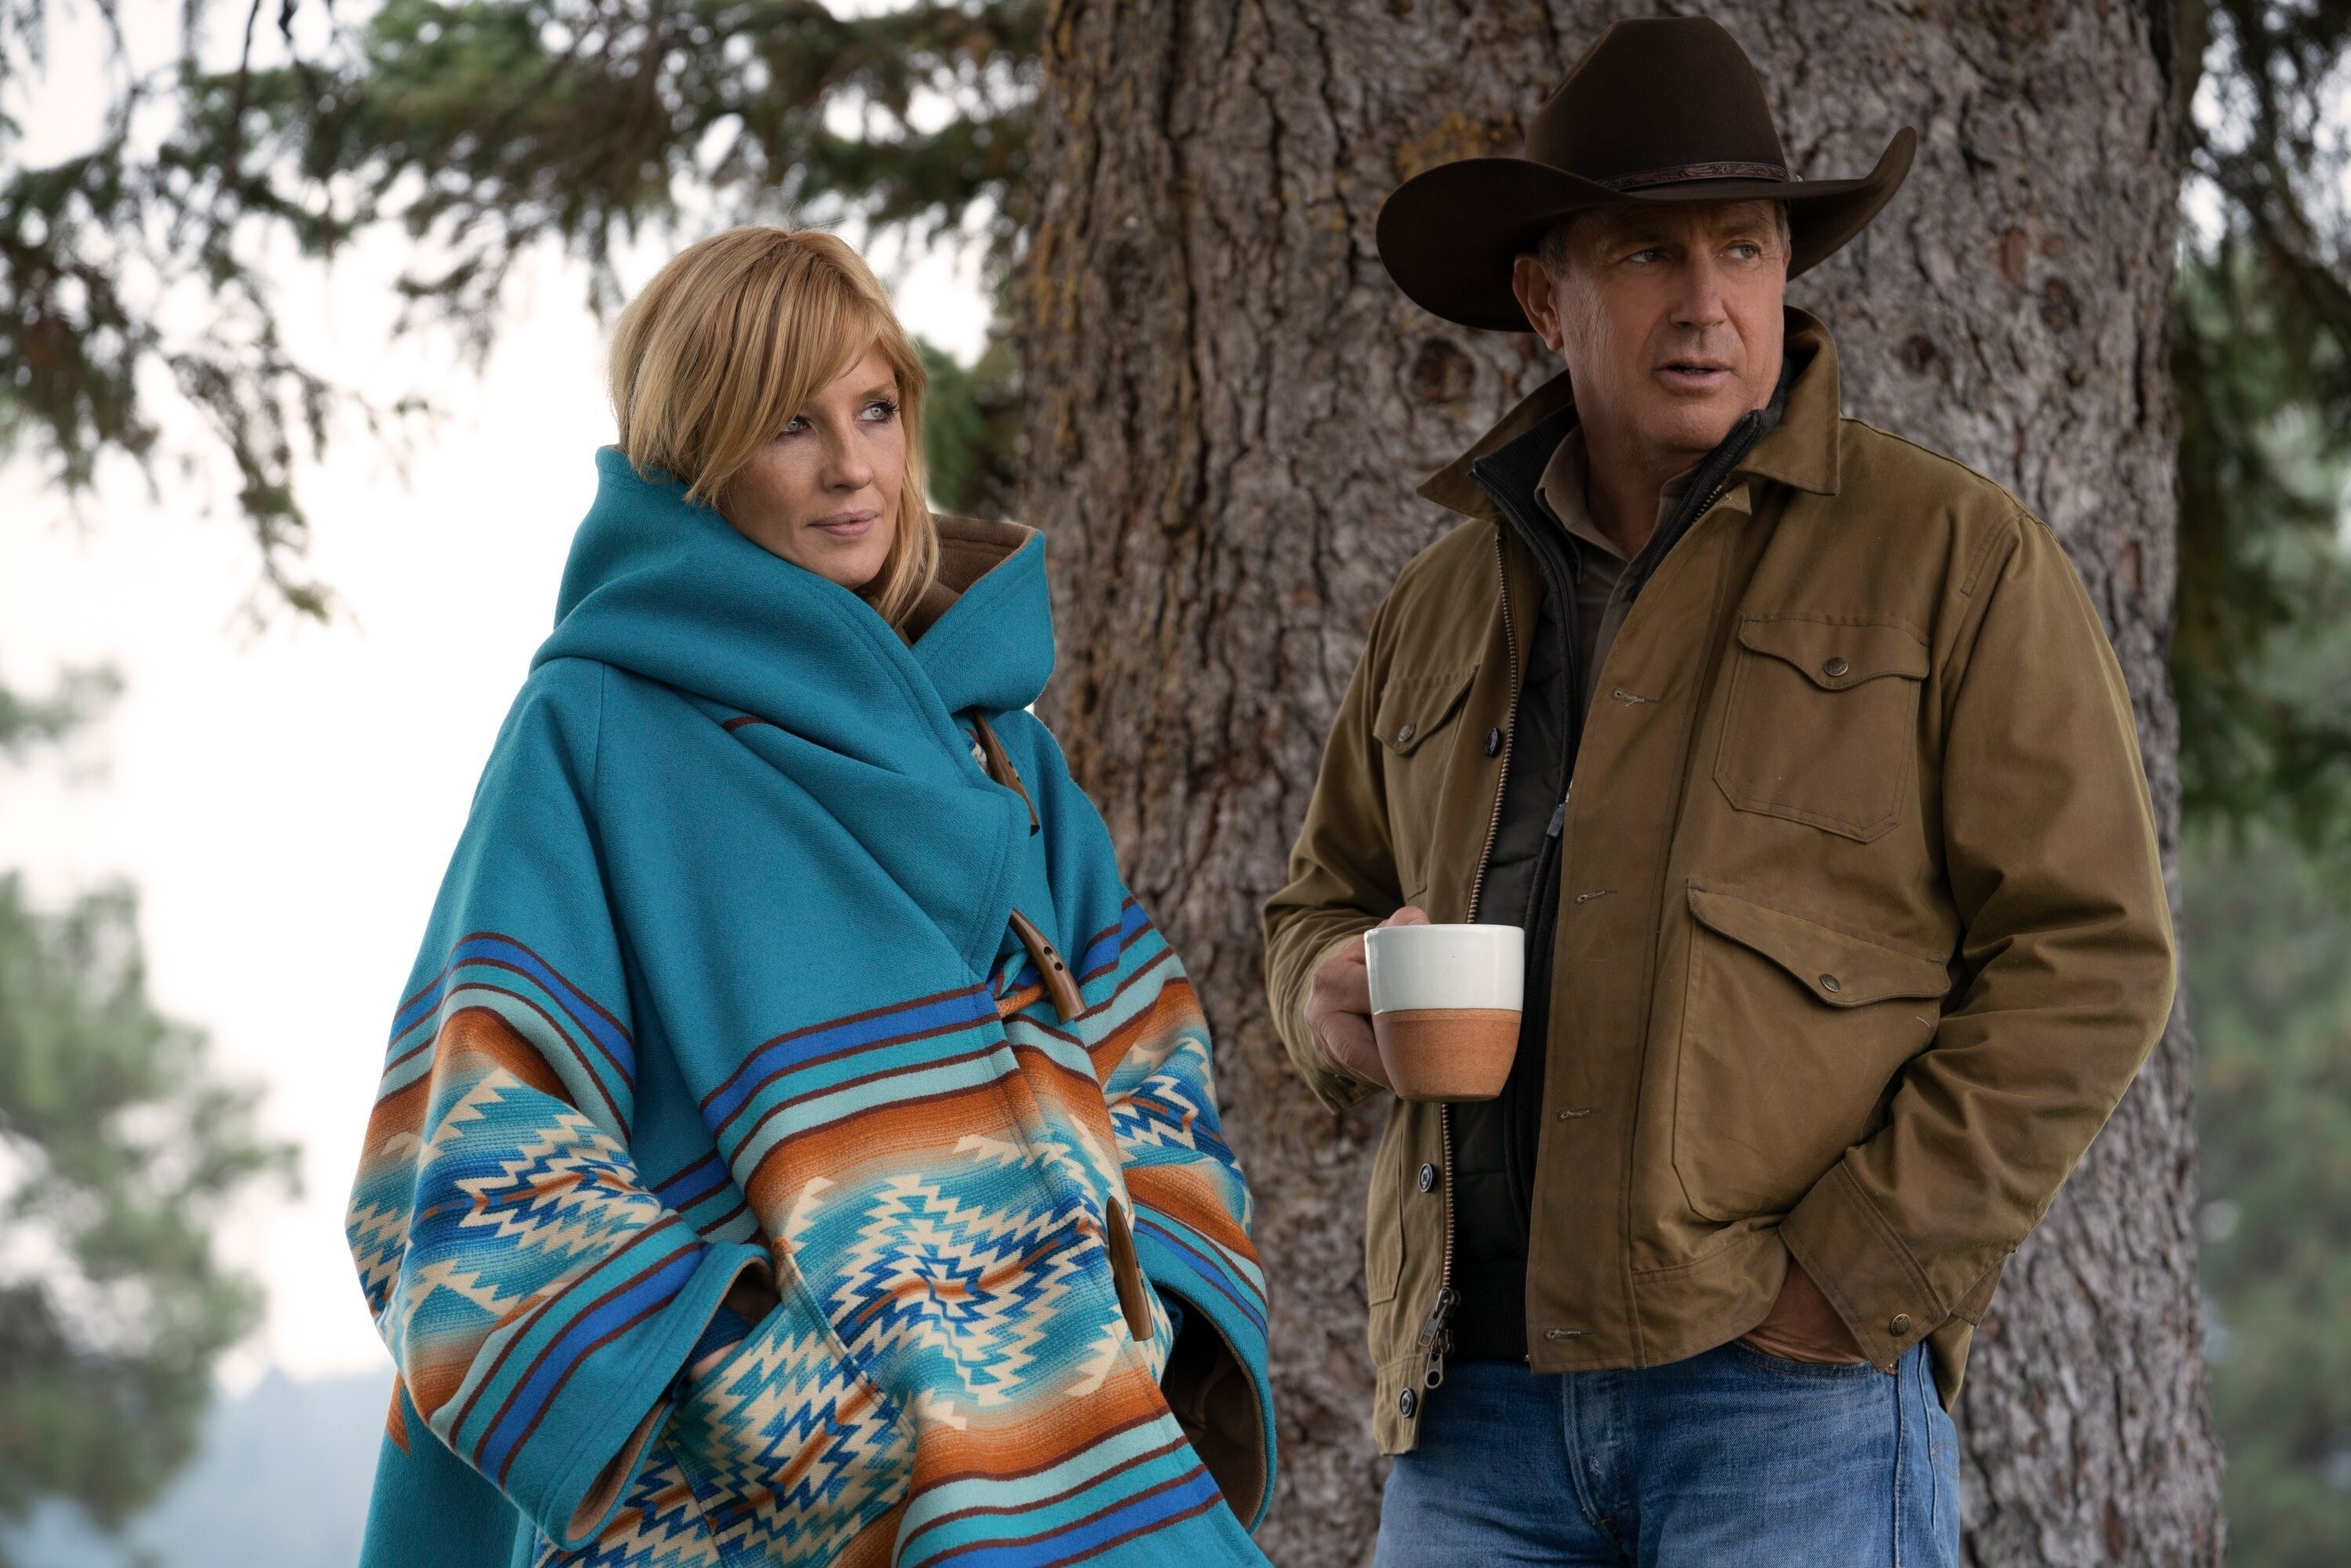 Kelly Reilly and Kevin Costner stand bundled near a tree